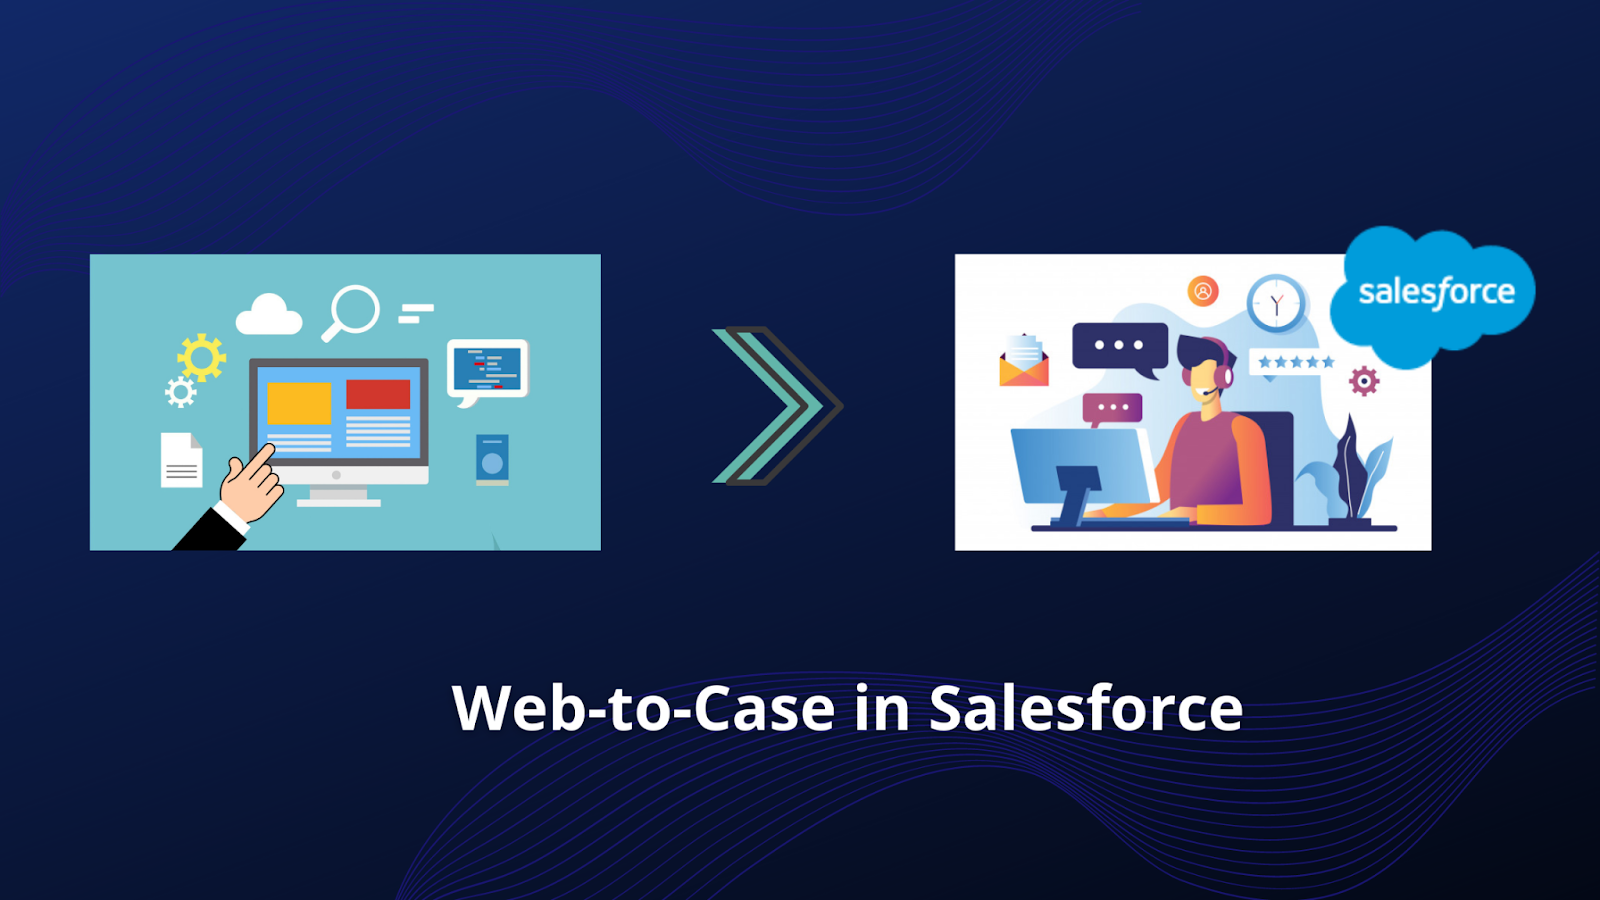 Web-to-Case in Salesforce